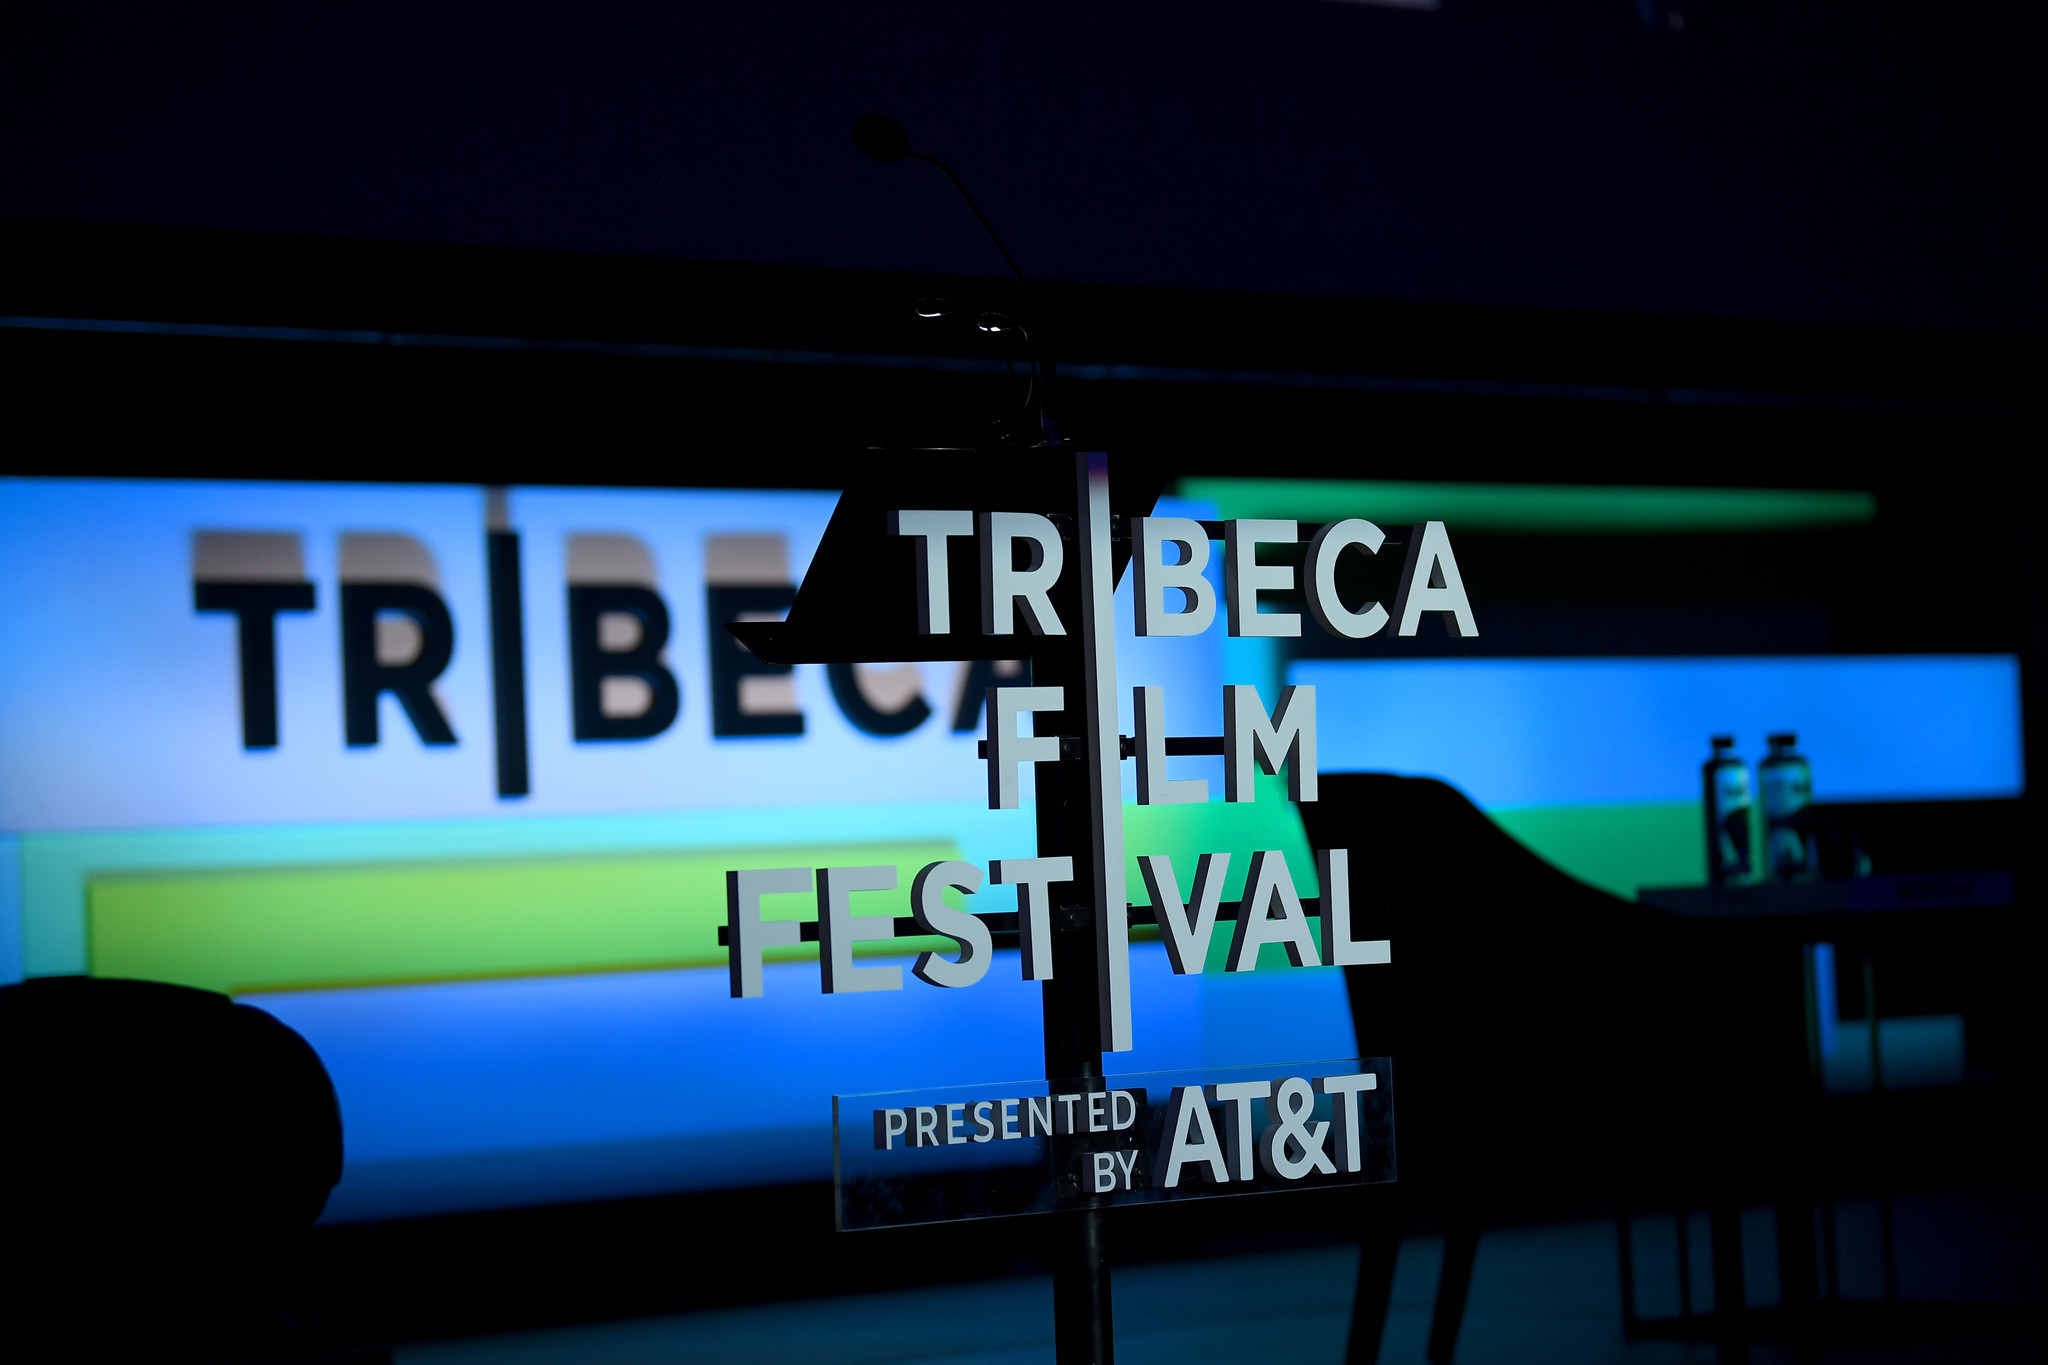 Tribeca Film Festival to go on this month digitally amid coronavirus outbreak